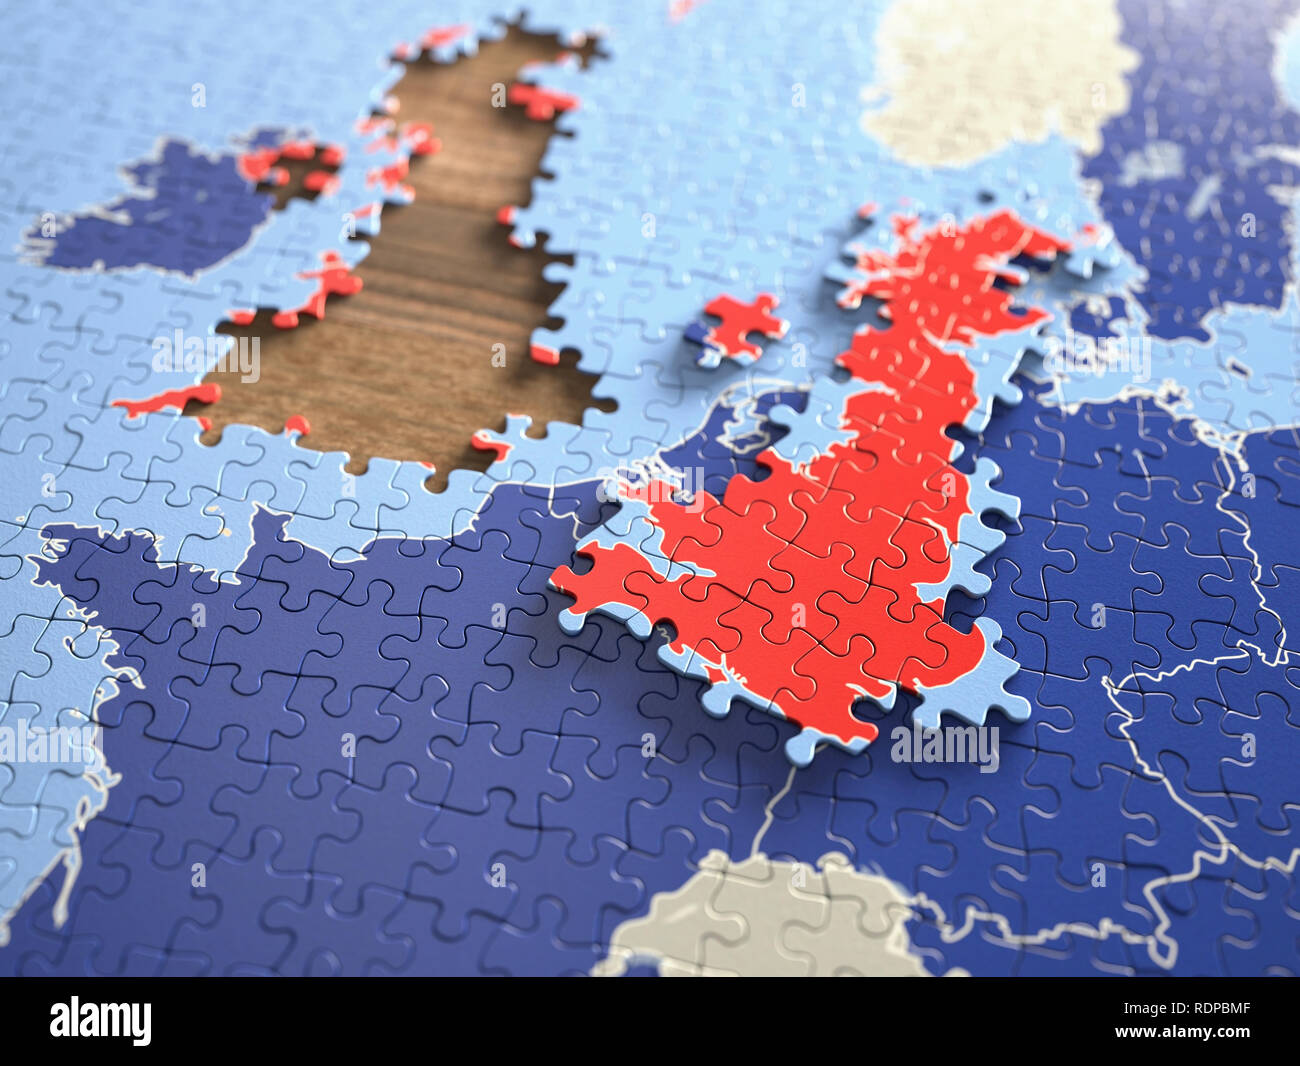 UK leaving the European Union, illustration. - Stock Image